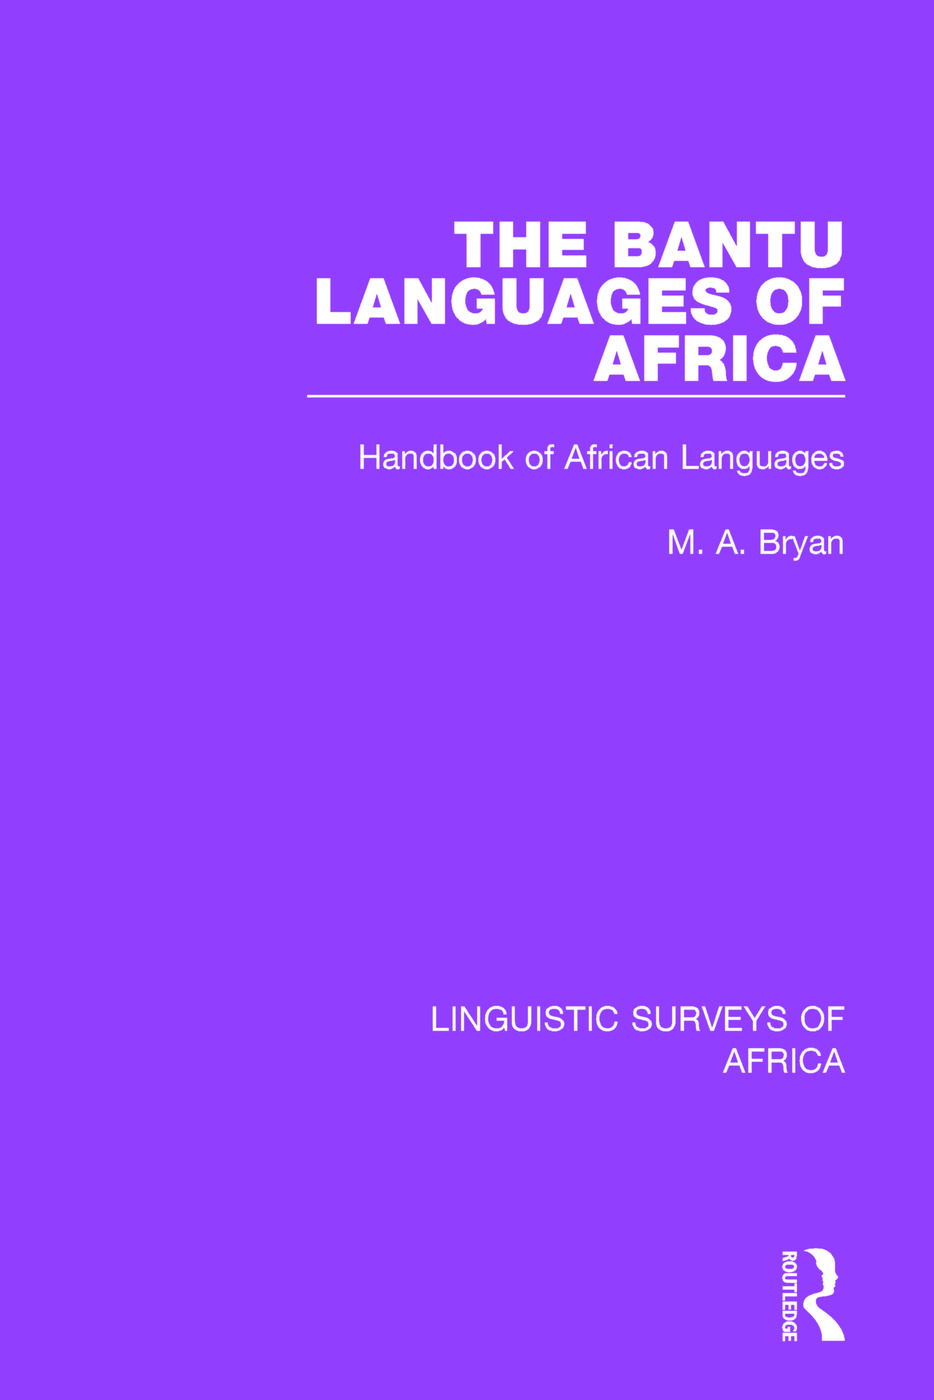 The Bantu Languages of Africa: Handbook of African Languages book cover